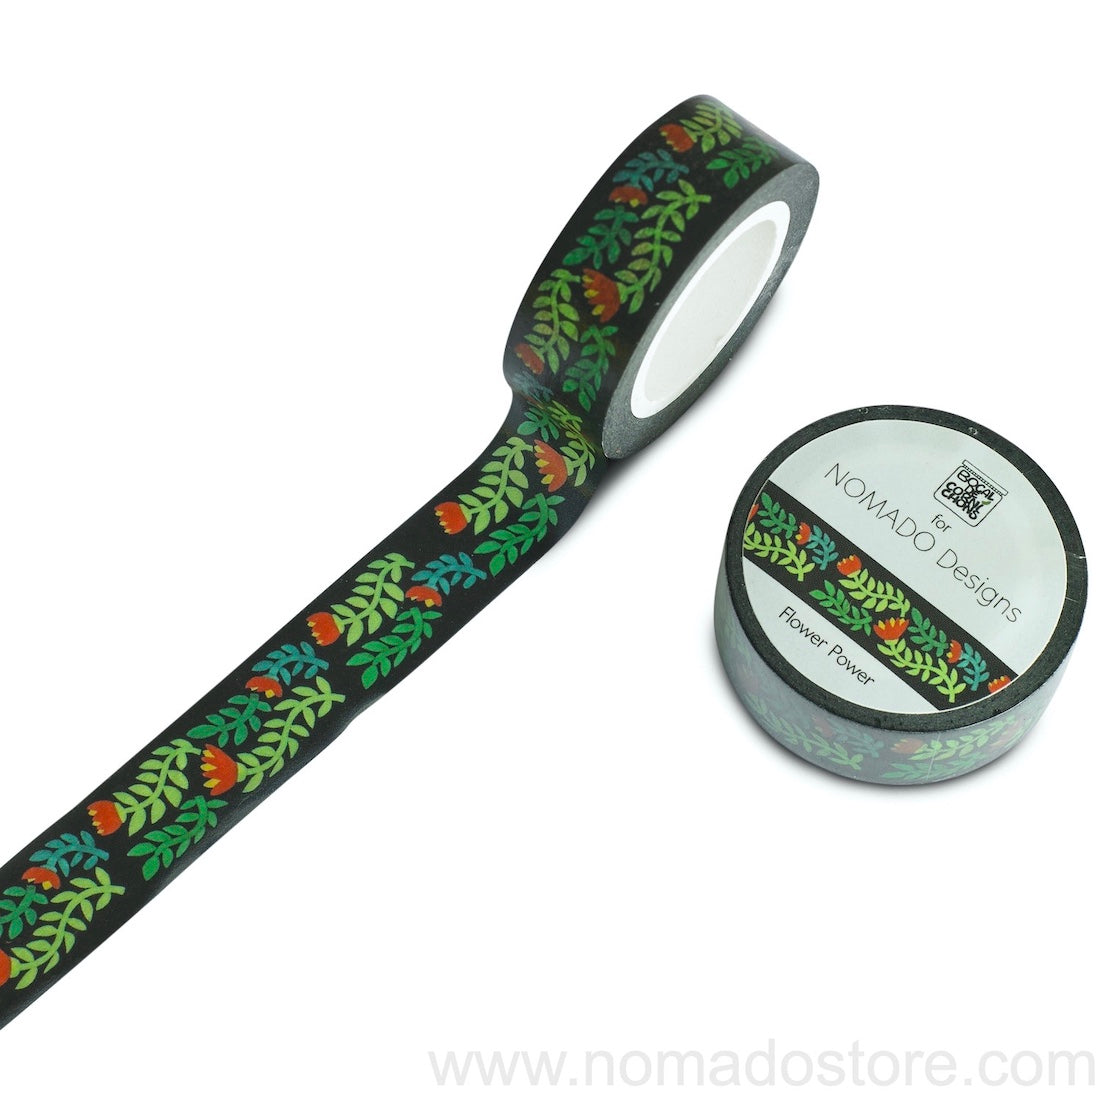 Bocal de Cornichons for Nomado Designs Flower Power Washi Tape